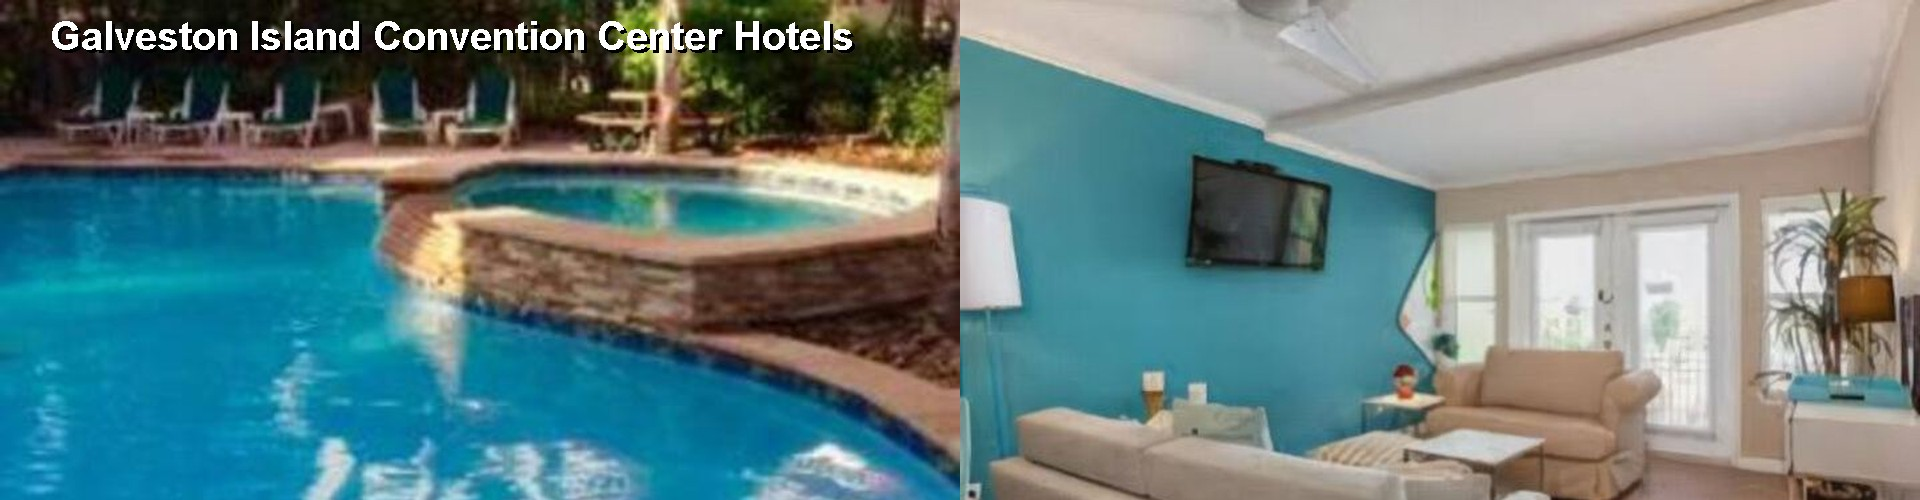 5 Best Hotels near Galveston Island Convention Center